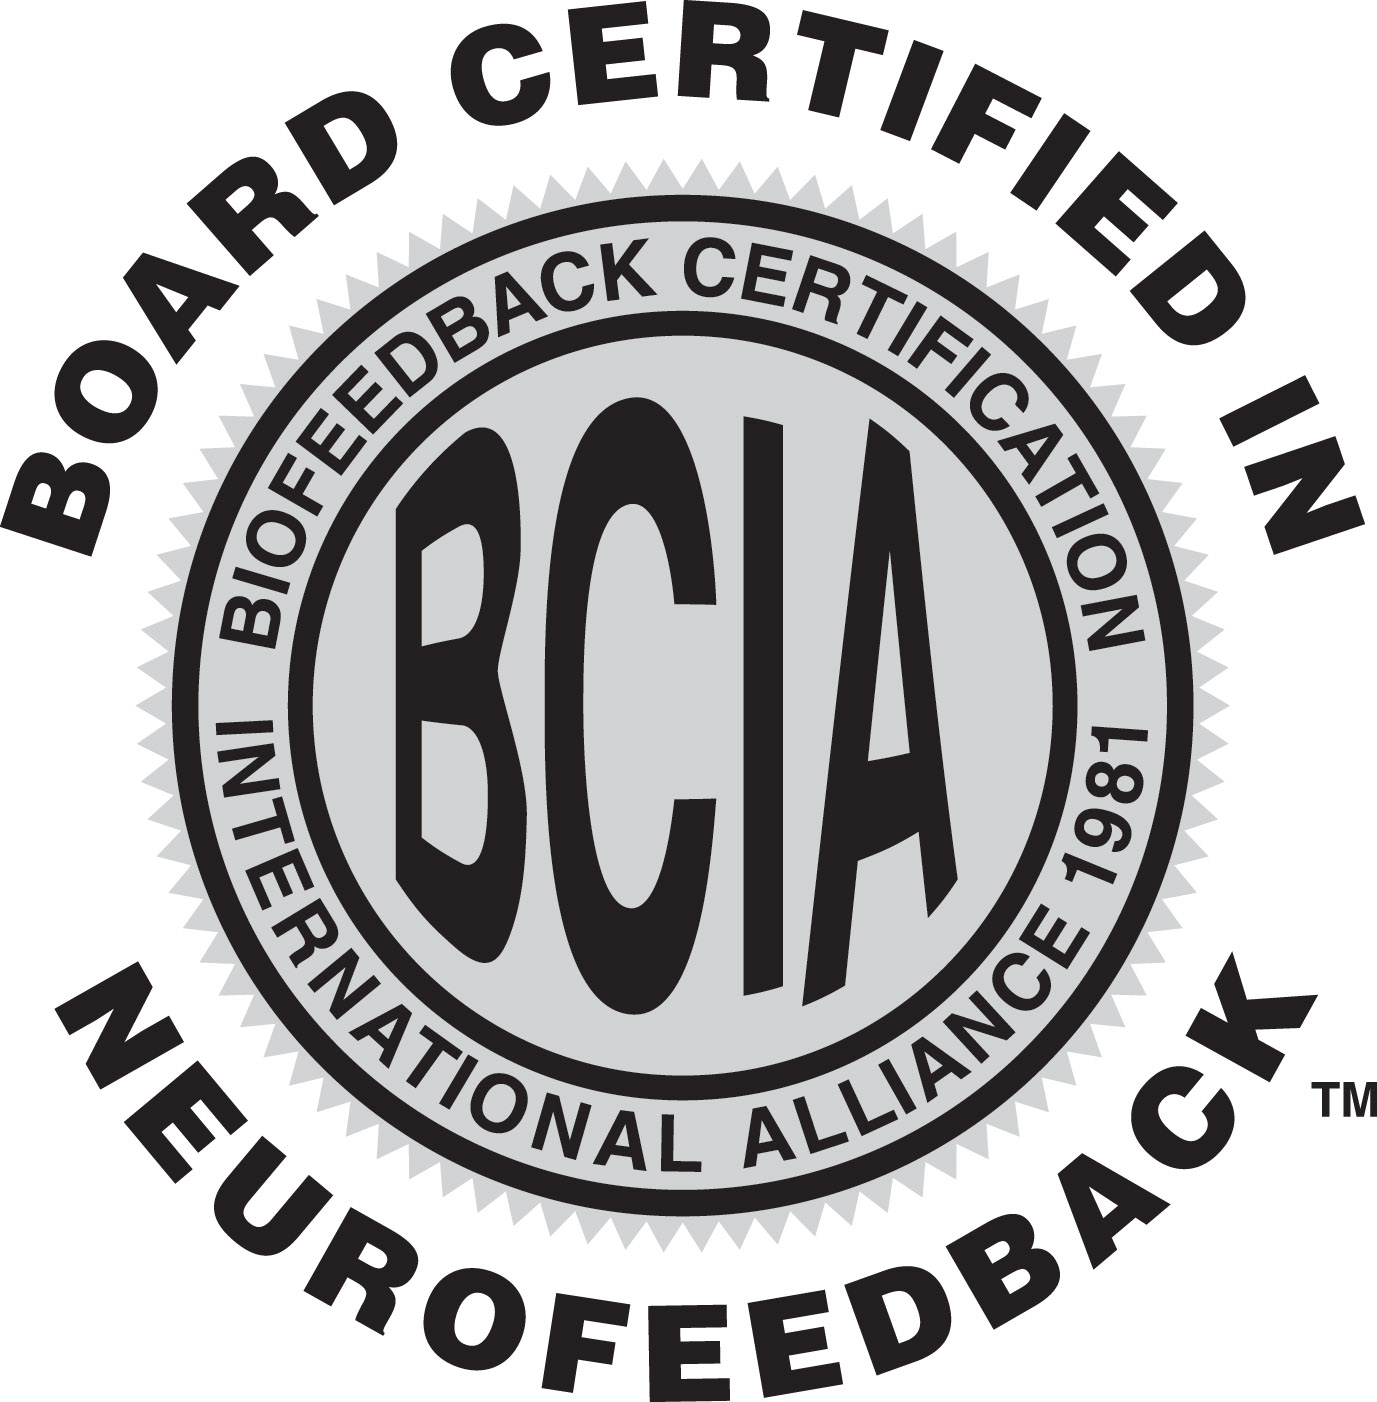 BCIA – Biofeedback Certification International Alliance 1981 logo